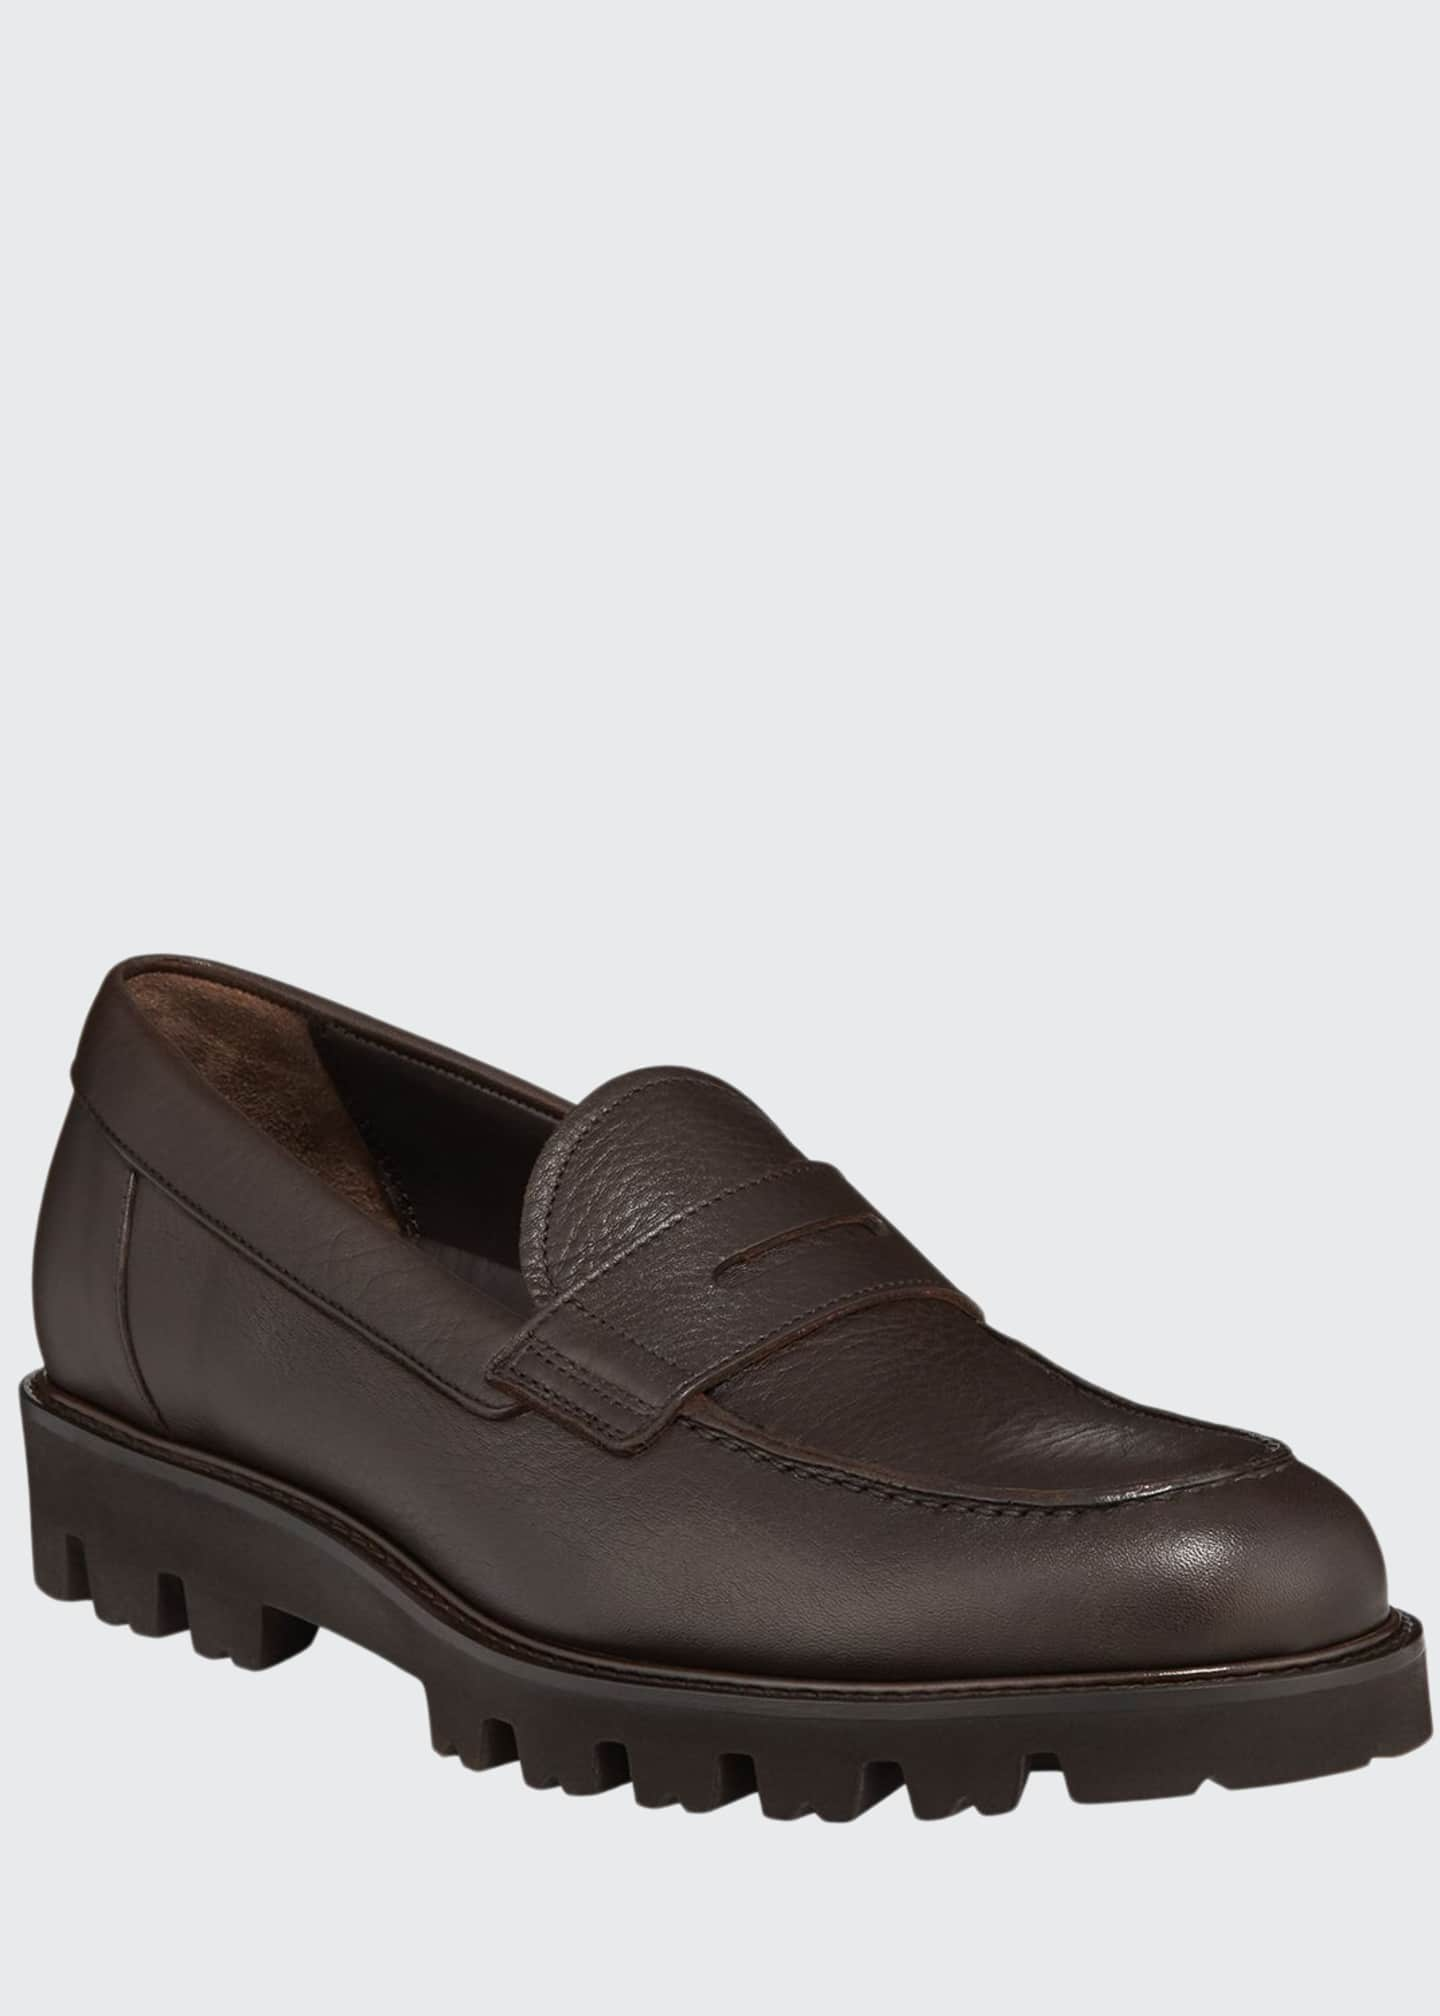 Image 1 of 5: Men's Comrade Leather Lug-Sole Penny Loafers